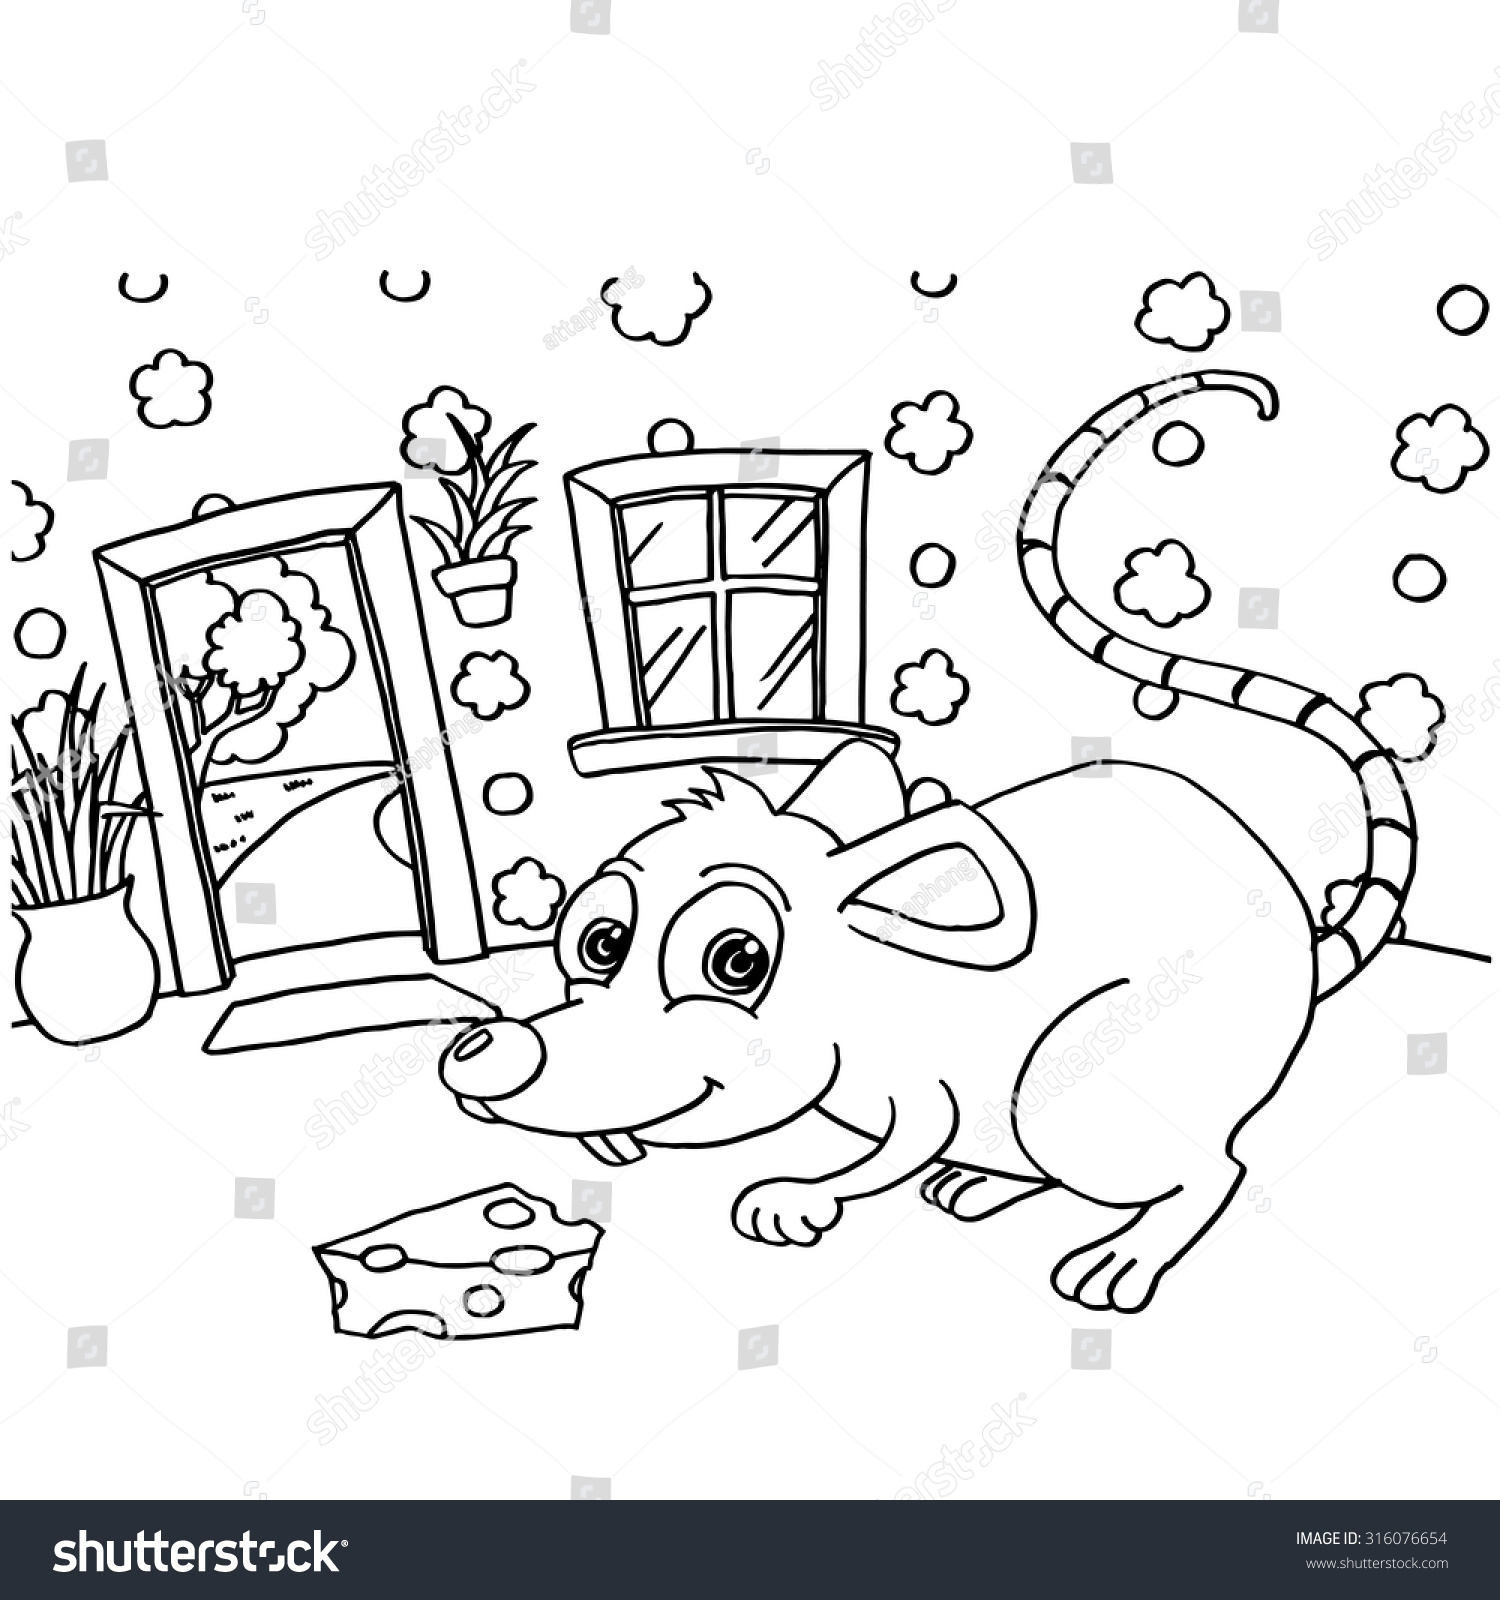 rat colouring pages vector stock vector 316076654 shutterstock